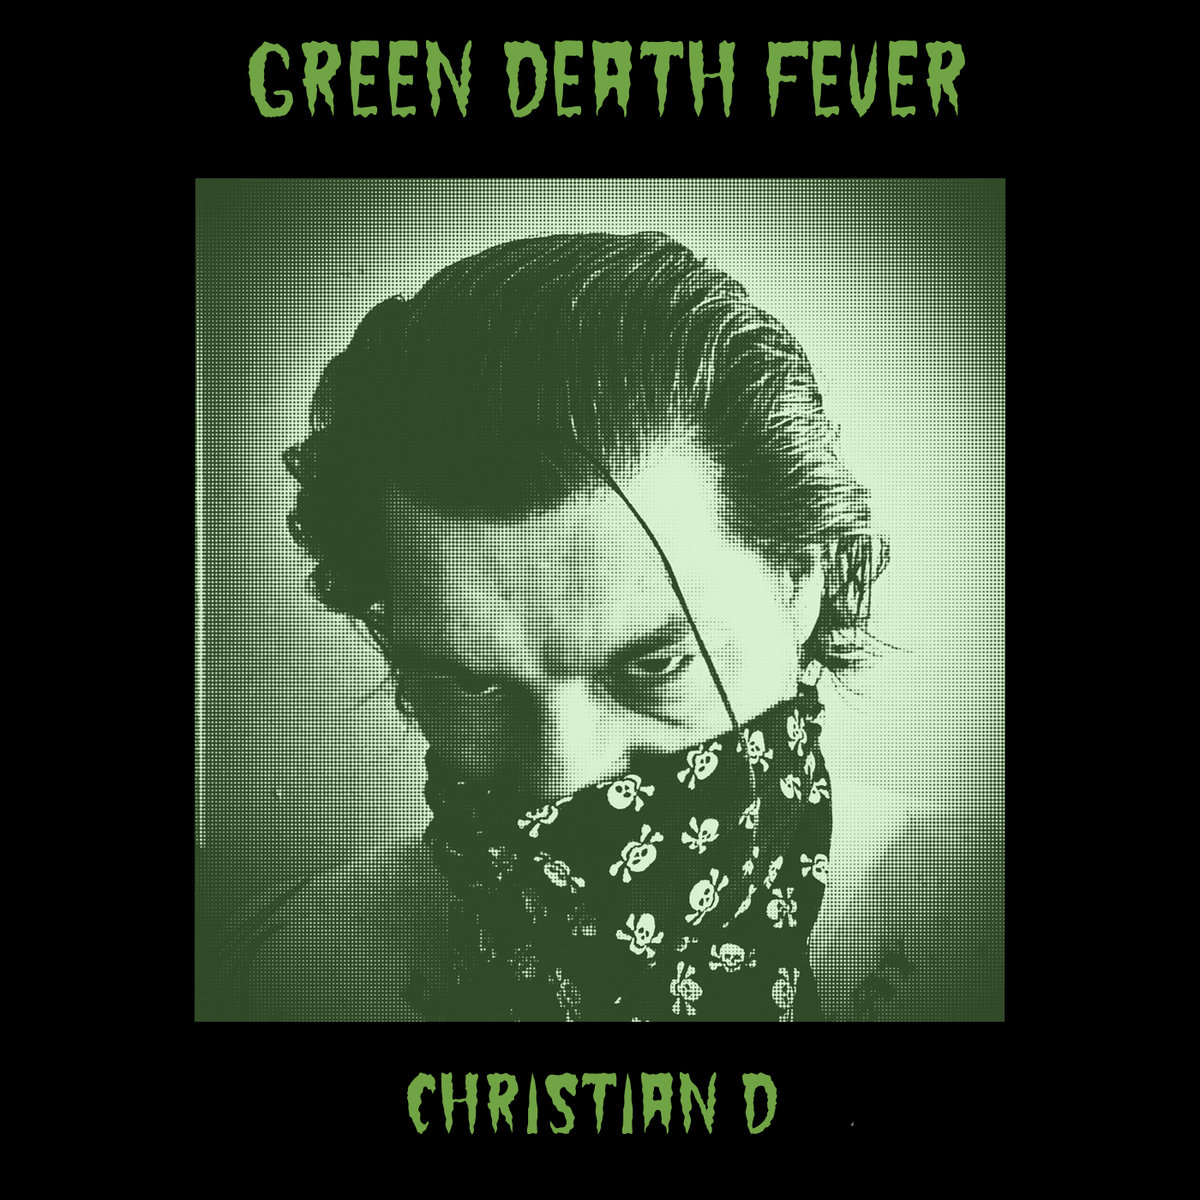 Green Death Fever by Christian D